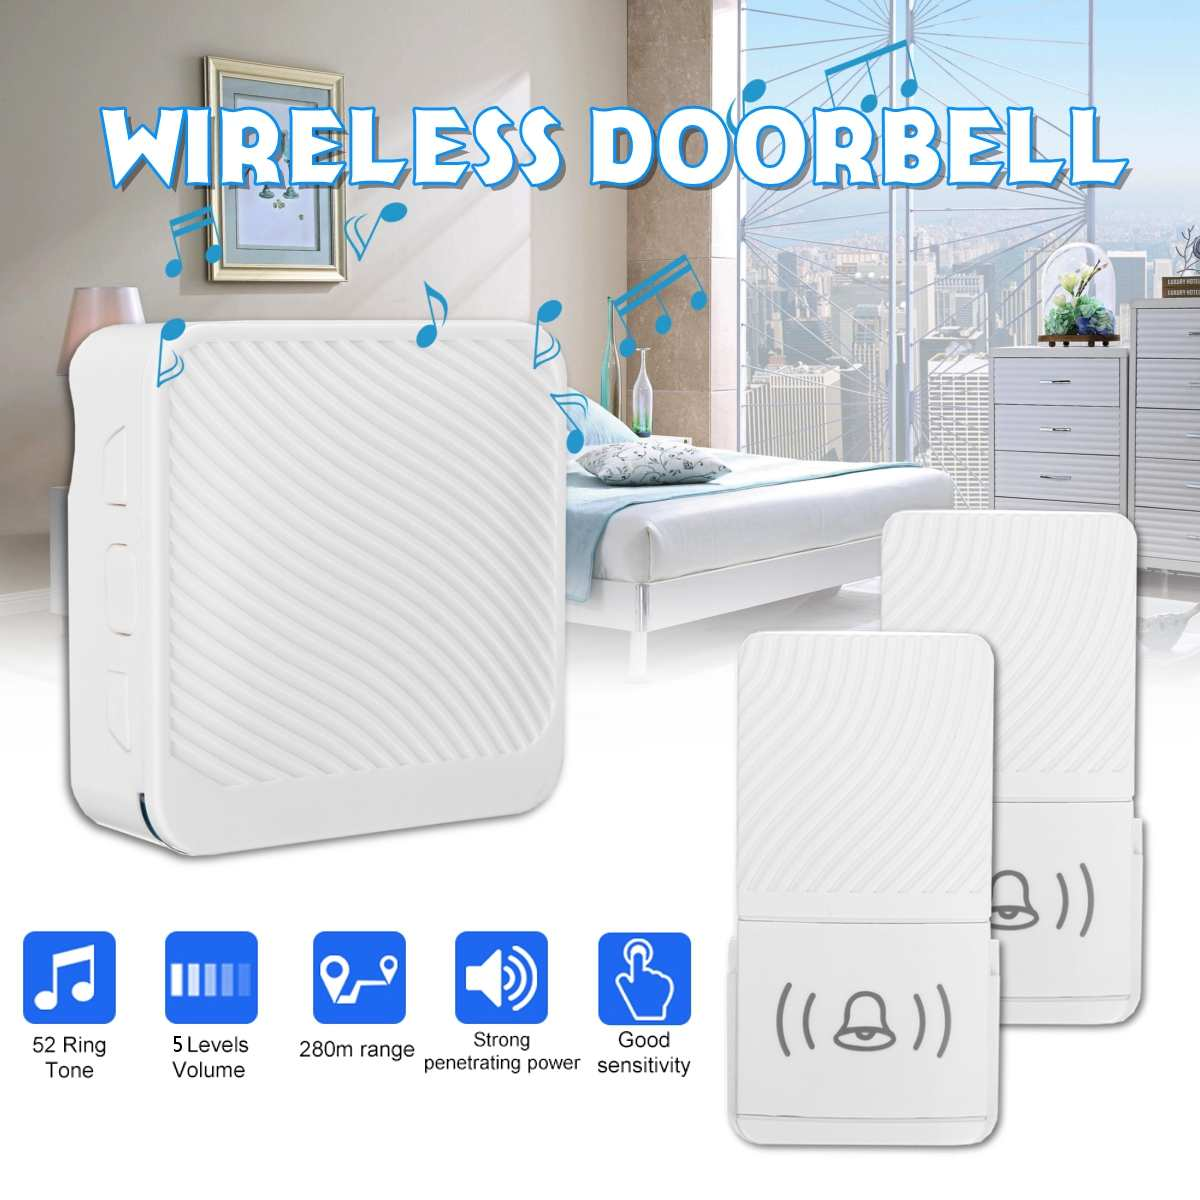 Wireless Doorbell AC 110V 50Hz 90db 280m 80x80x27mm 1 or 2 Receiver 1 or 2 Transmitter in white colorWireless Doorbell AC 110V 50Hz 90db 280m 80x80x27mm 1 or 2 Receiver 1 or 2 Transmitter in white color